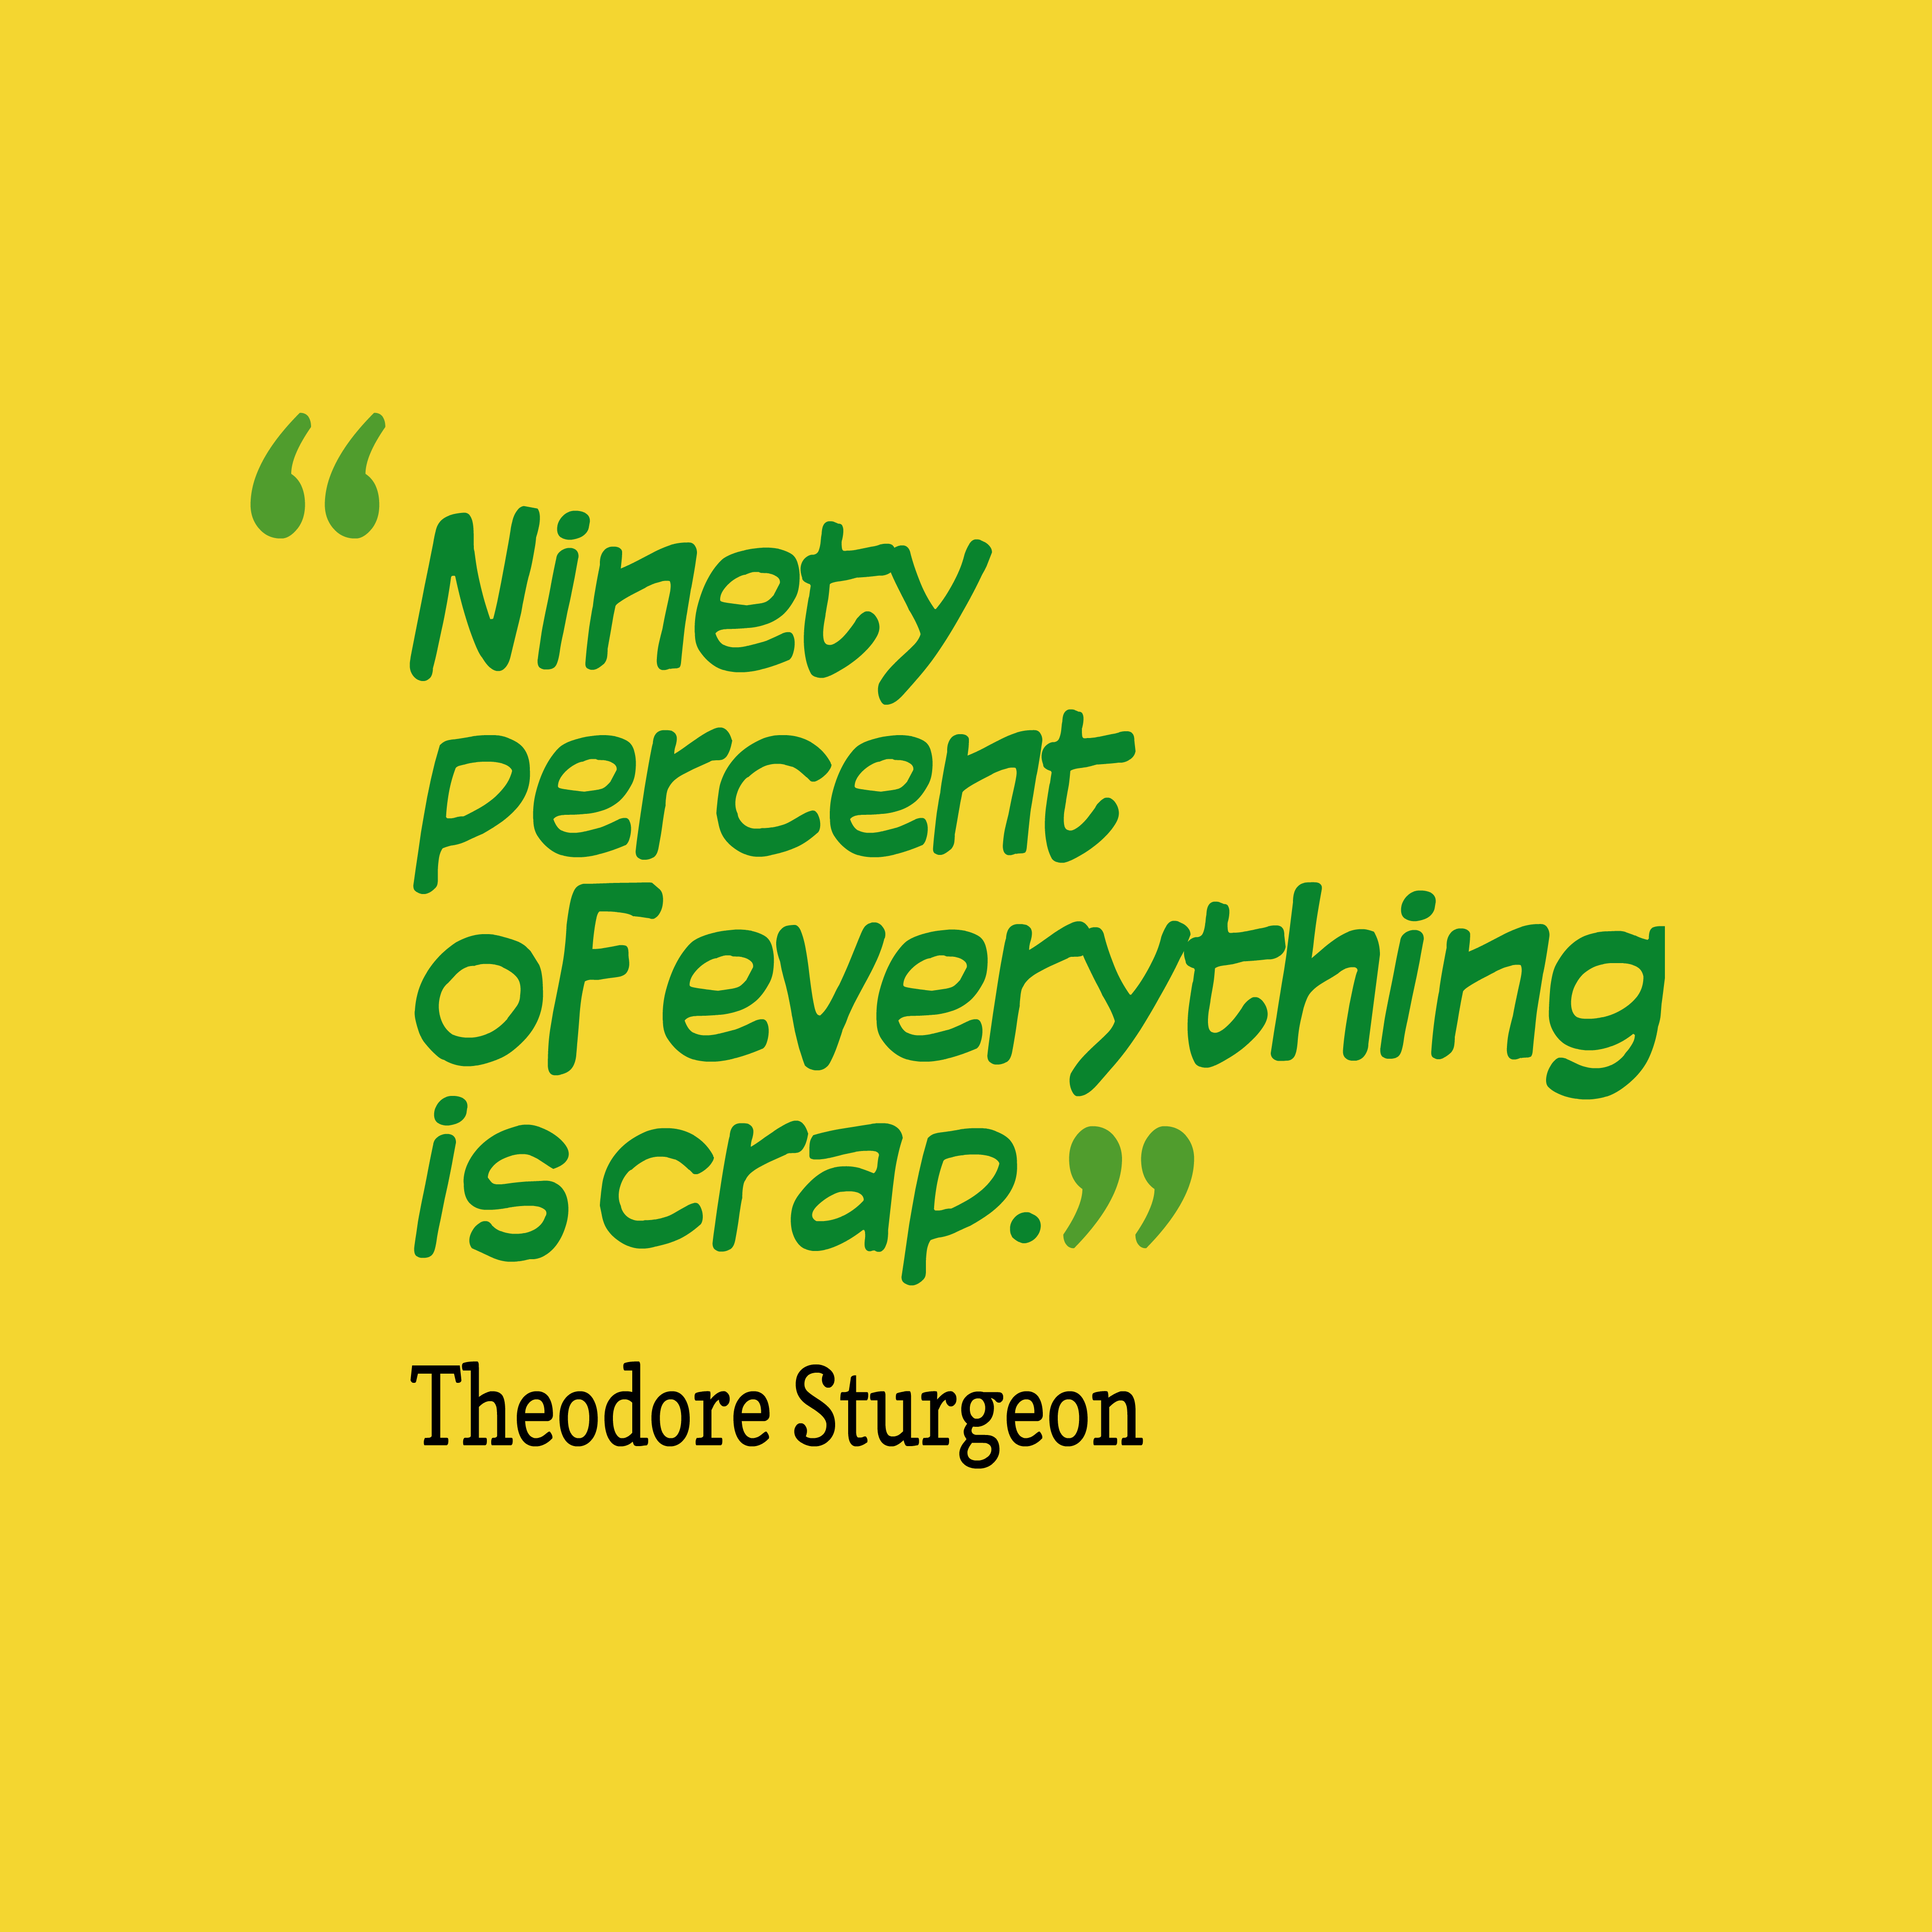 Quotes image of Ninety percent of everything is crap.